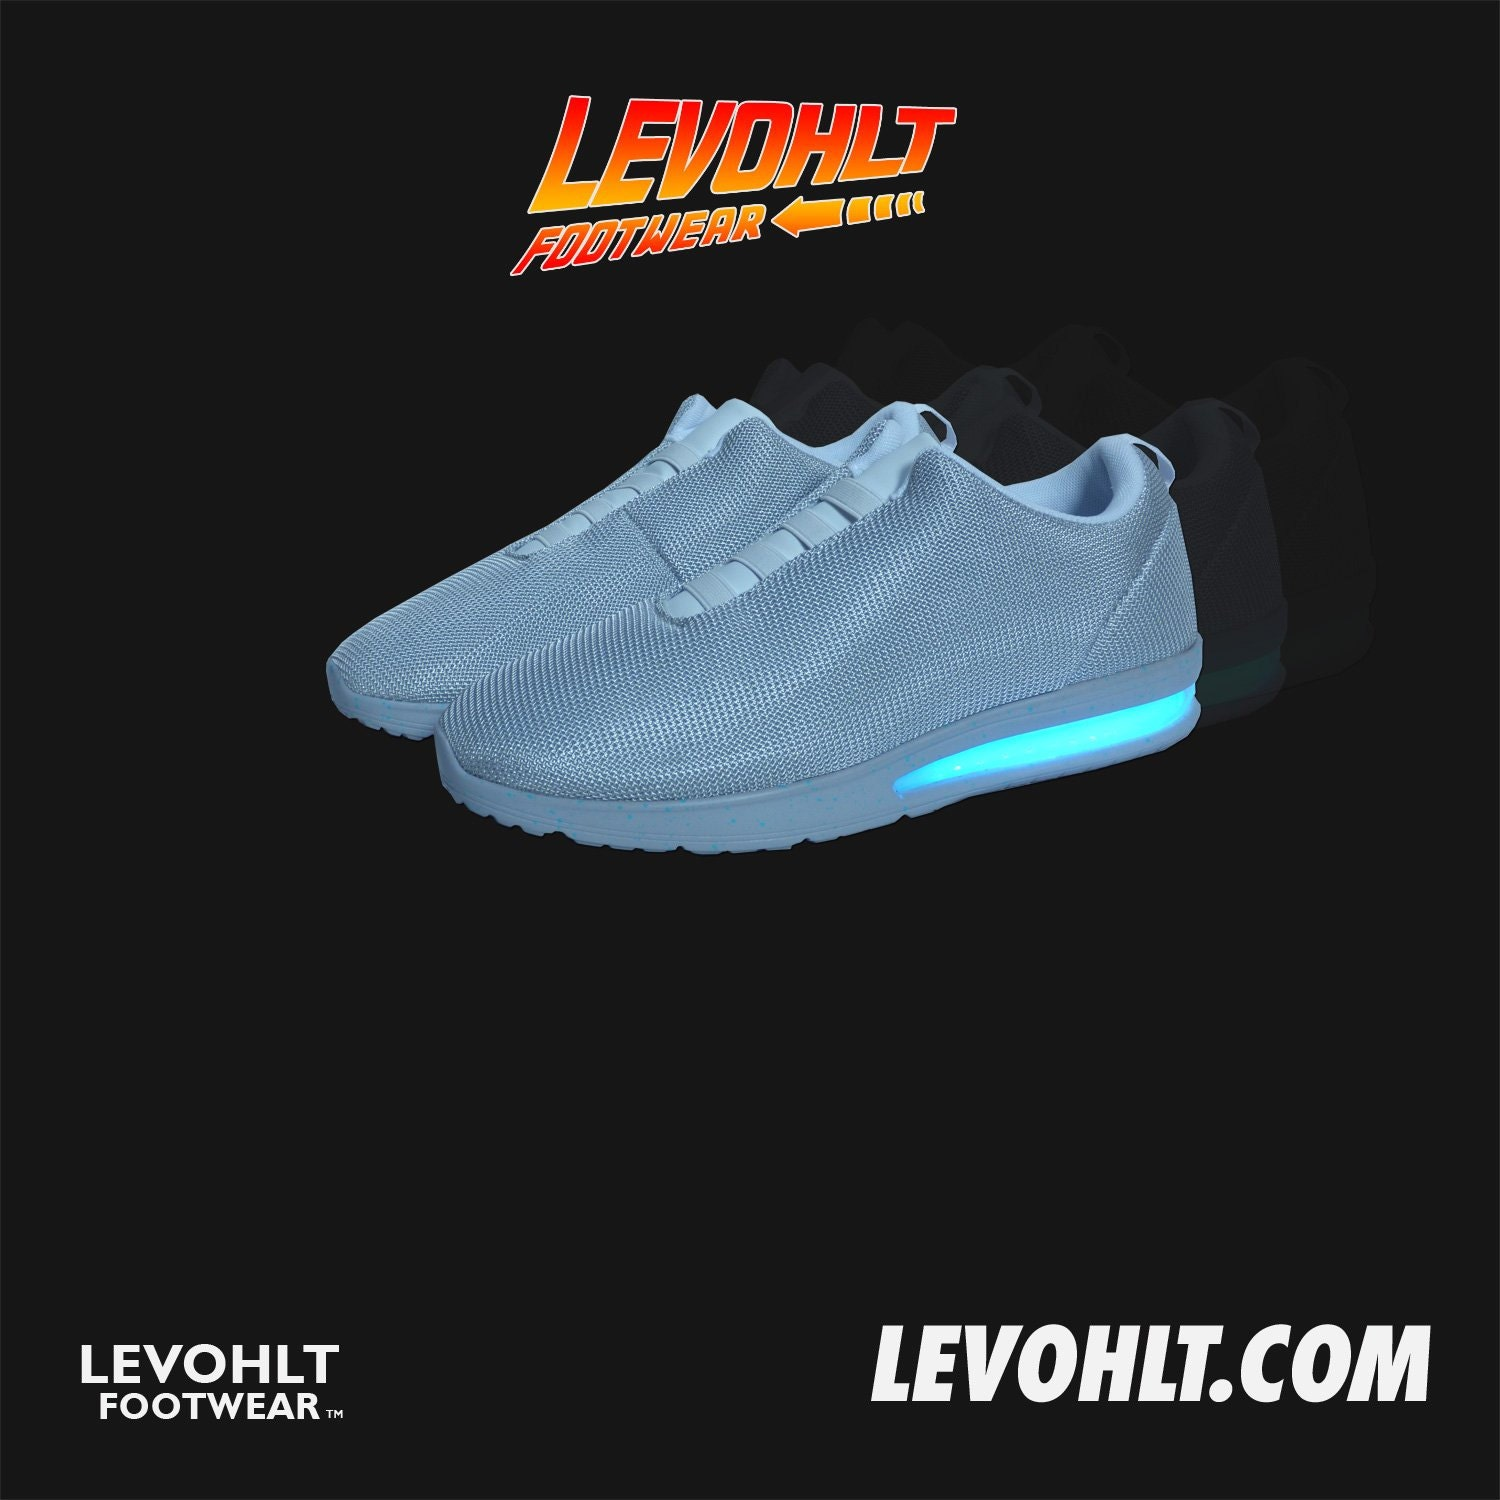 Cheap nike air mag china - Levohlt Lowtop Led Sneaker Back From The Future Nike Air Mag Style Light Up Shoes 80s 7 Colour Modes Usb Rechargeable